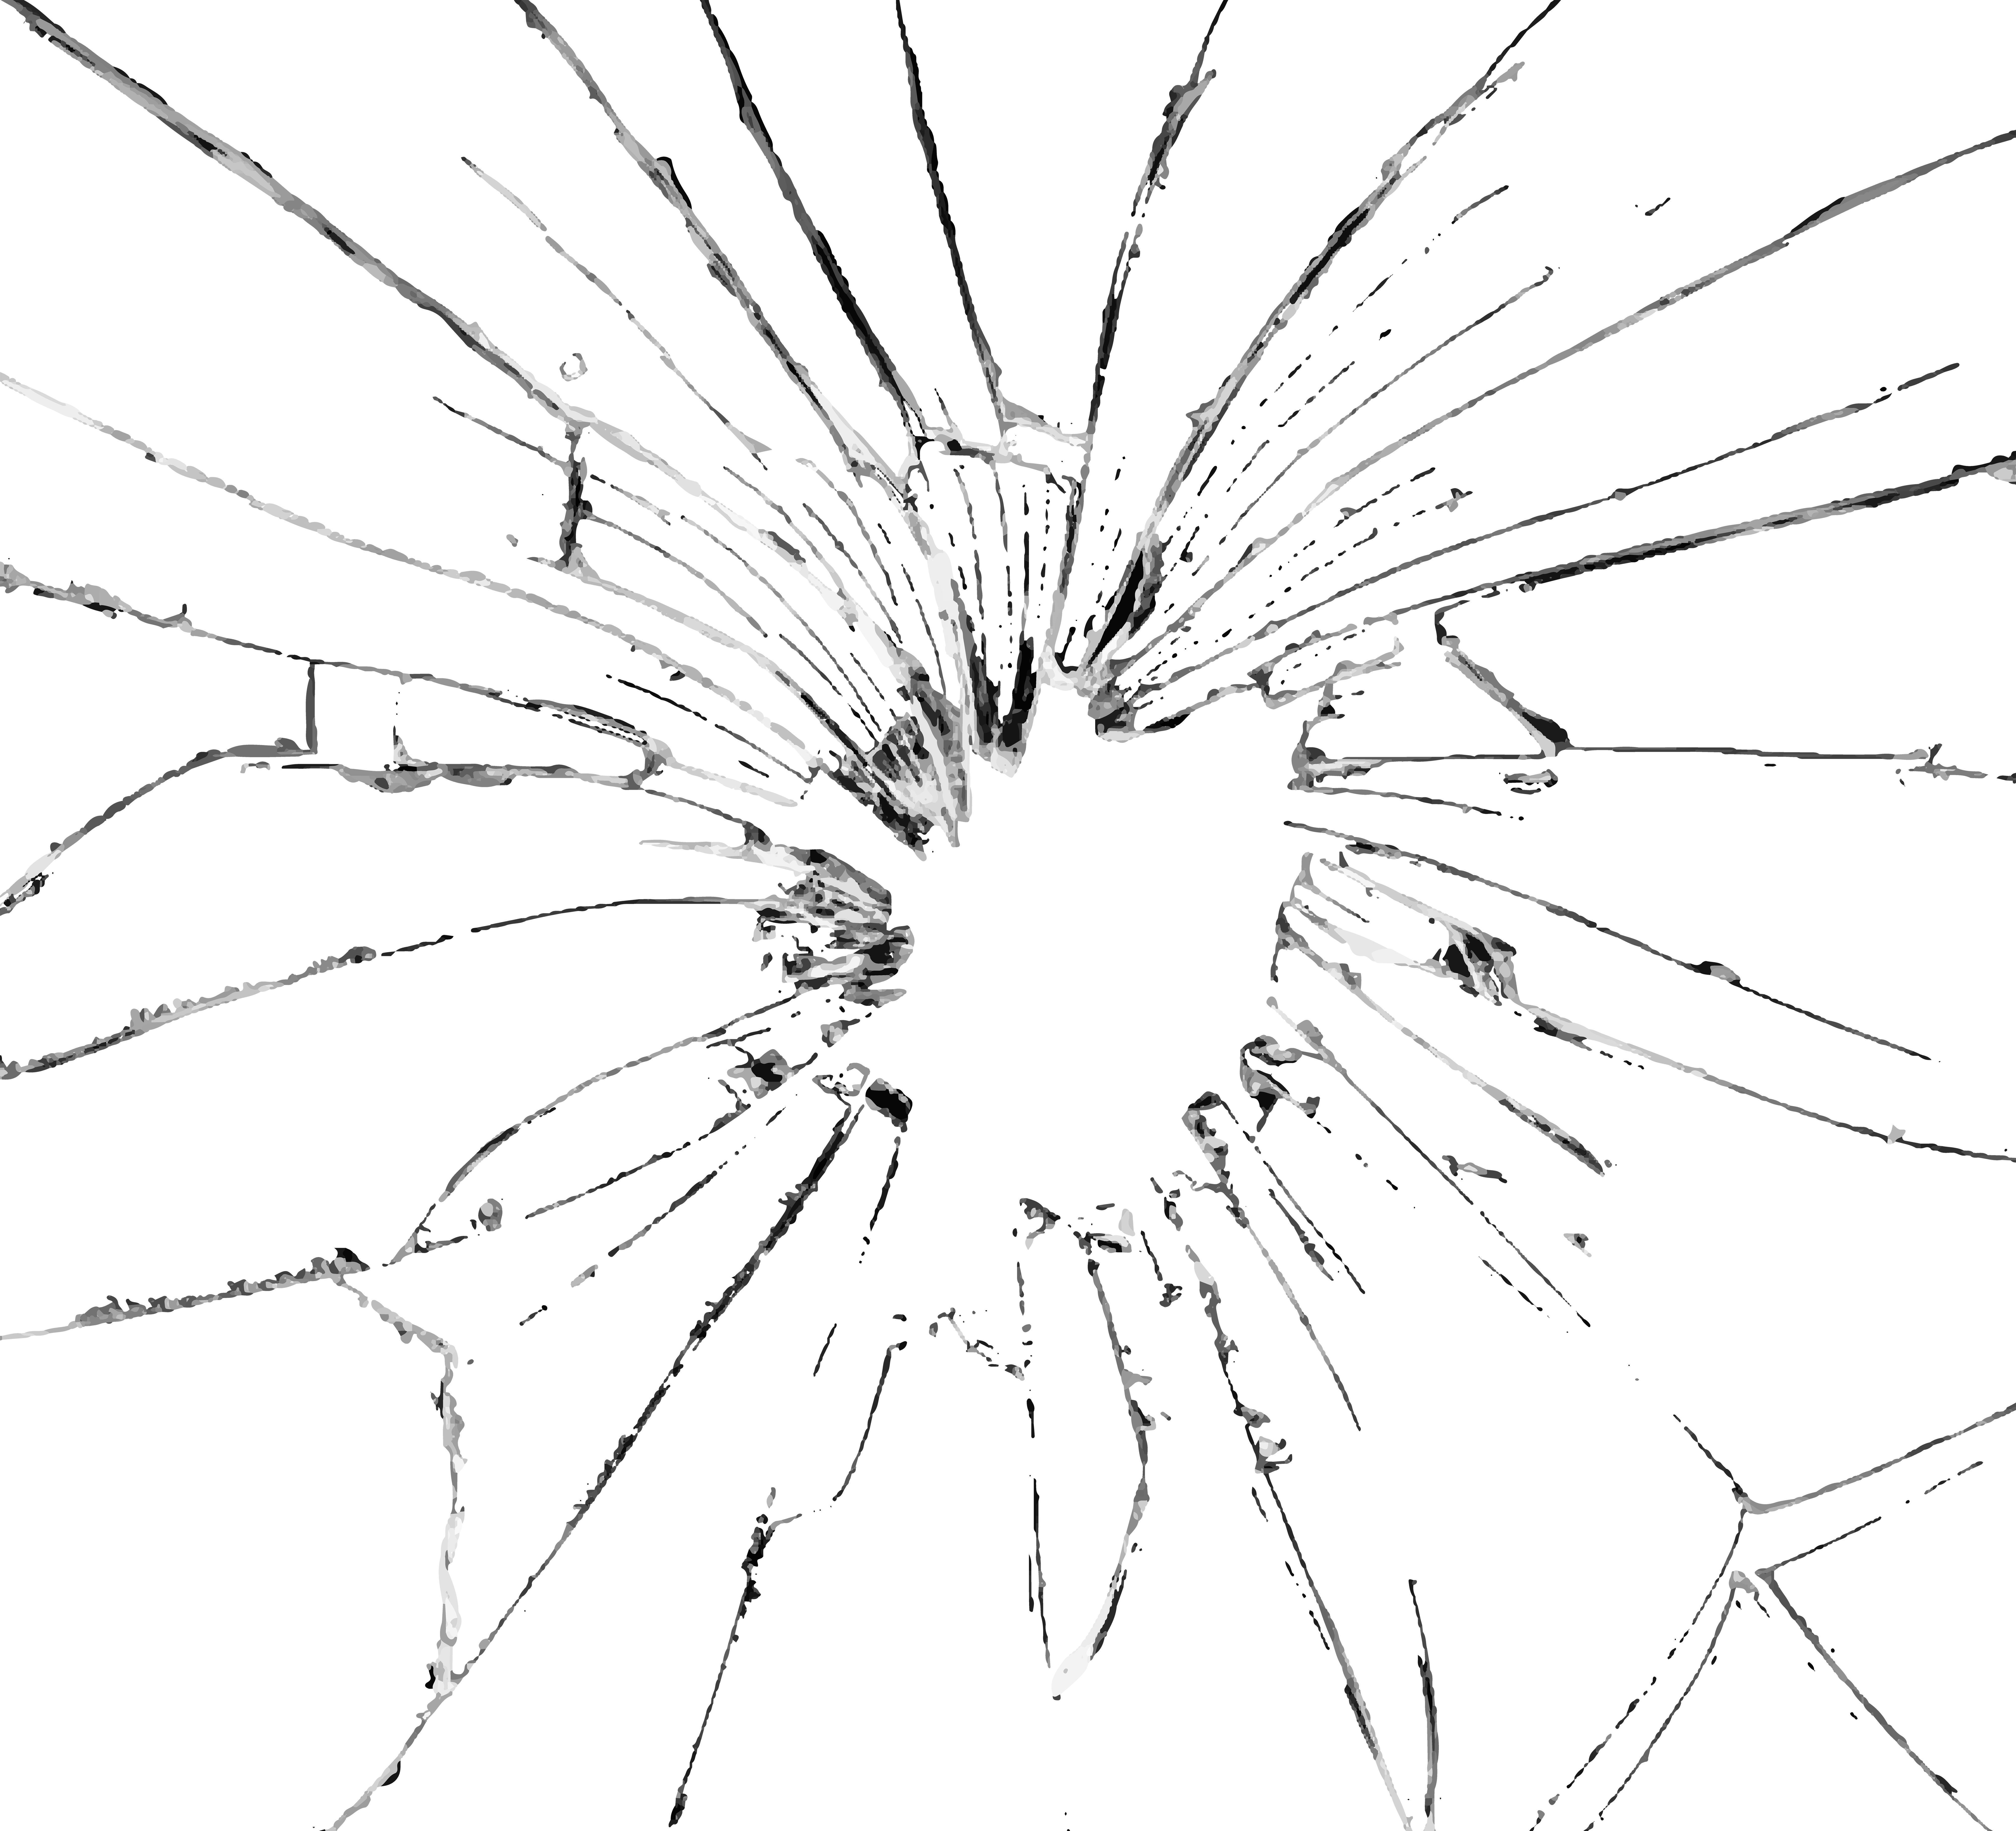 Cracked drawing cup. Broken glass effect png